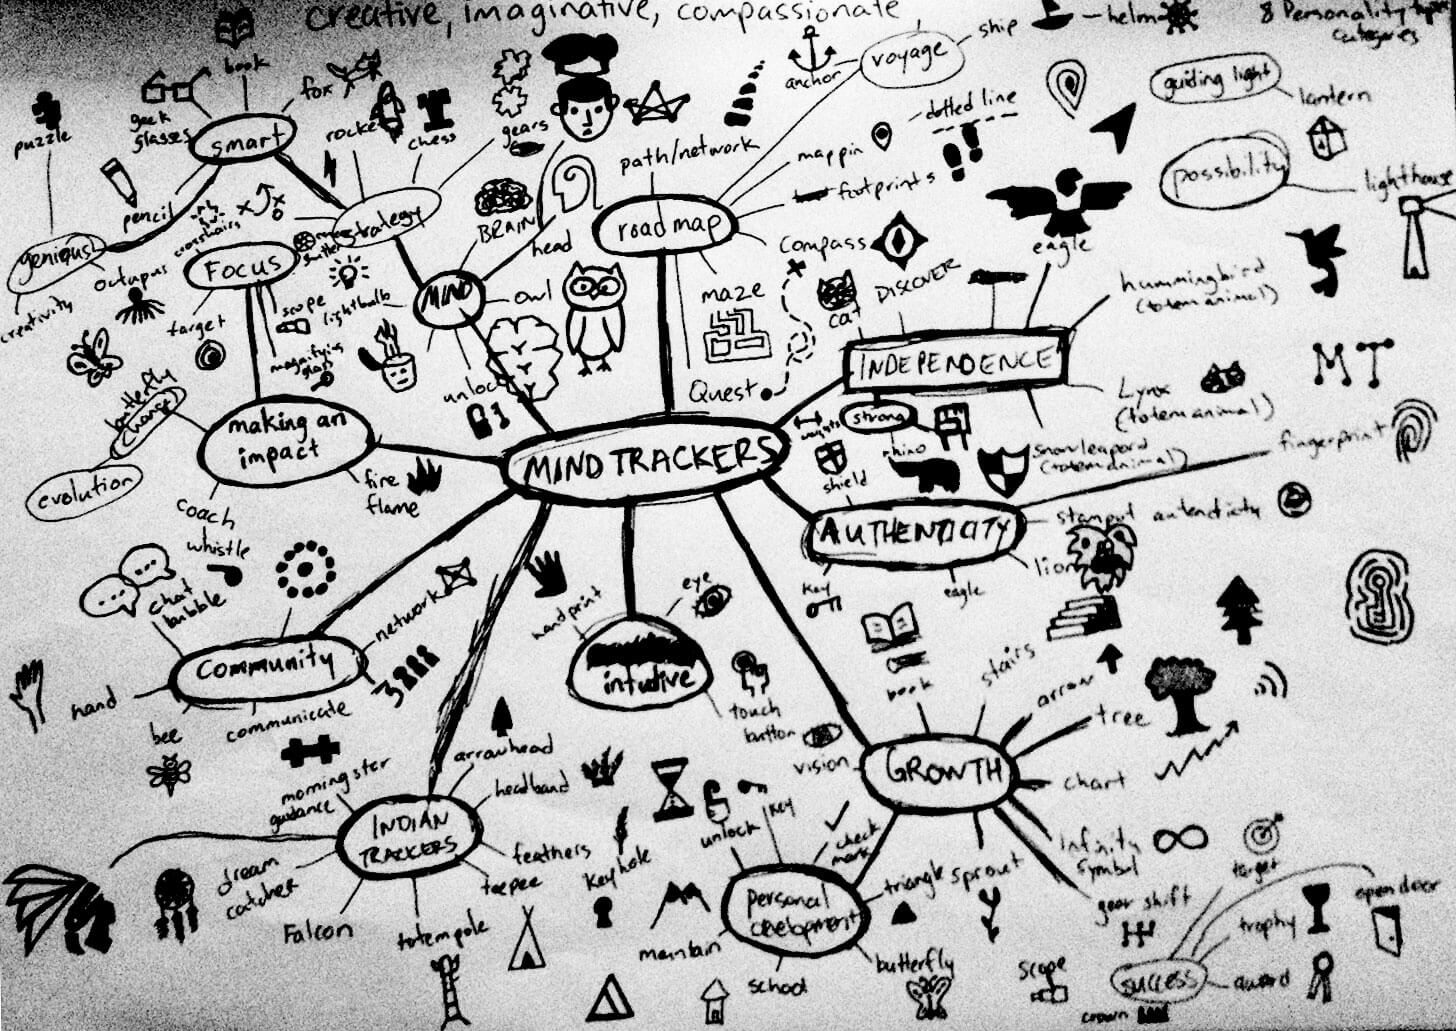 My initial Mind Map for the Mind Trackers logo